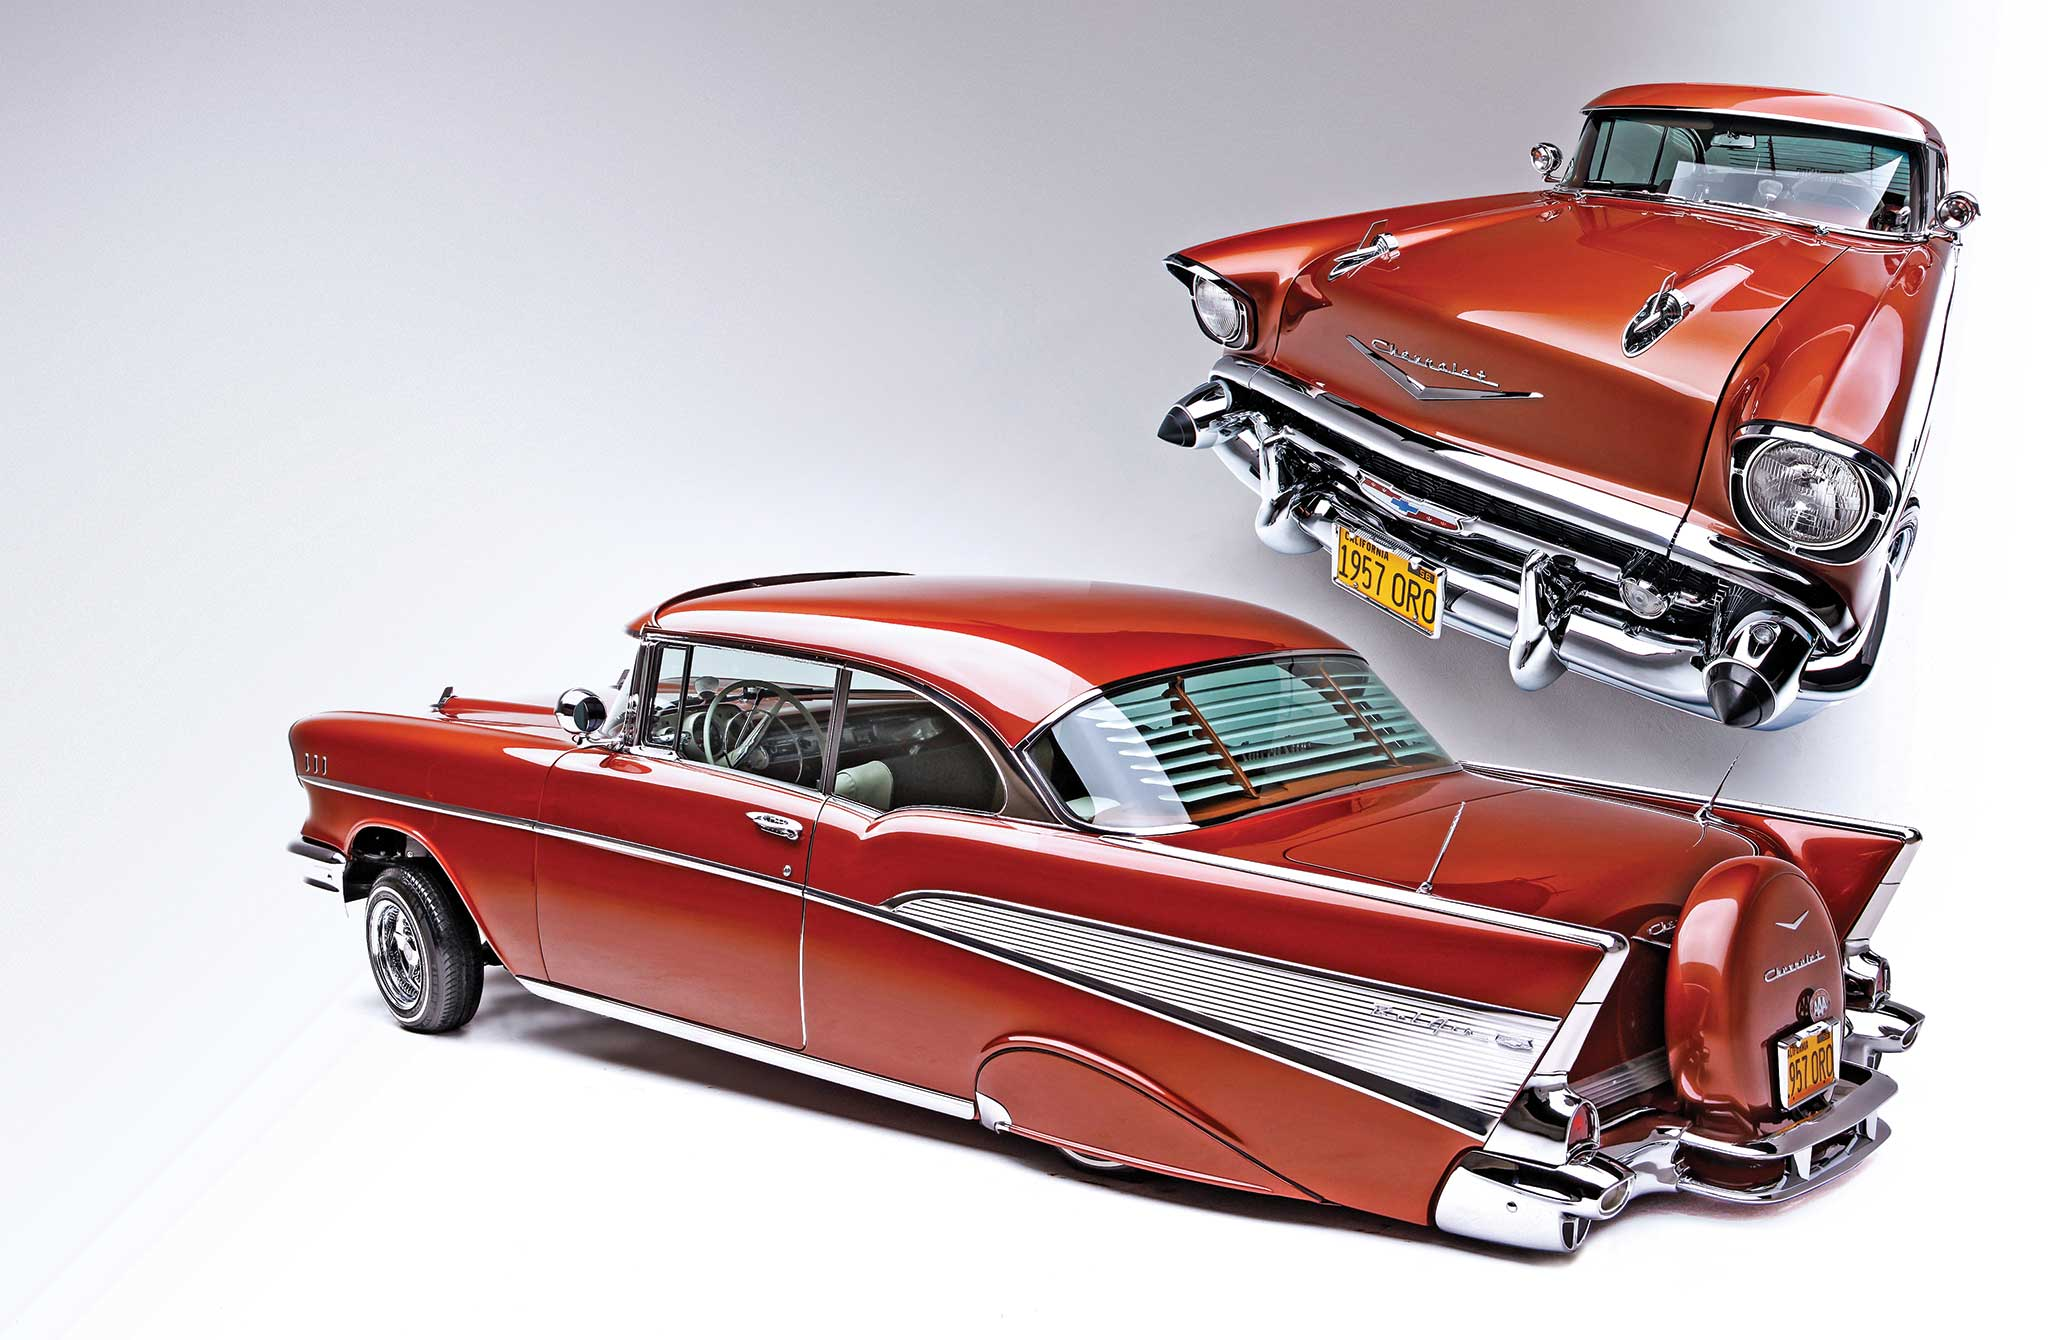 1957 chevrolet bel air 1957 oro. Black Bedroom Furniture Sets. Home Design Ideas